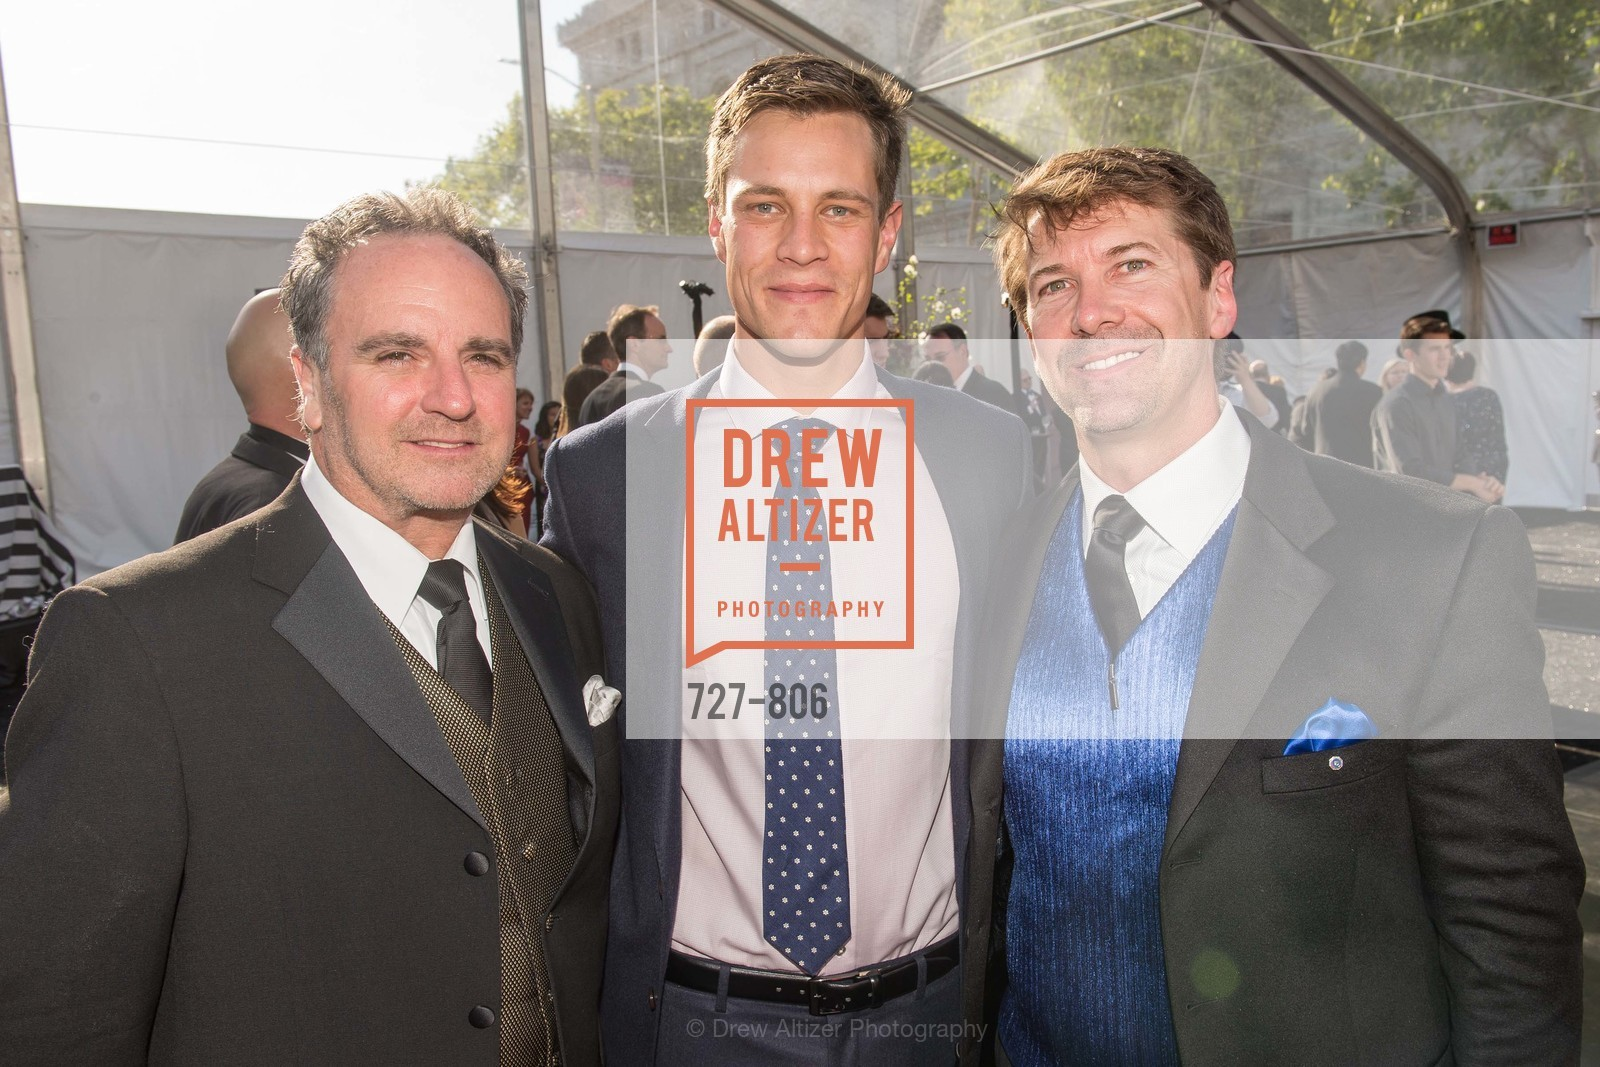 Stephen Wattrus, Bradley Frey, A.C.T. Gala Come Get Stranded, US, April 26th, 2015,Drew Altizer, Drew Altizer Photography, full-service agency, private events, San Francisco photographer, photographer california